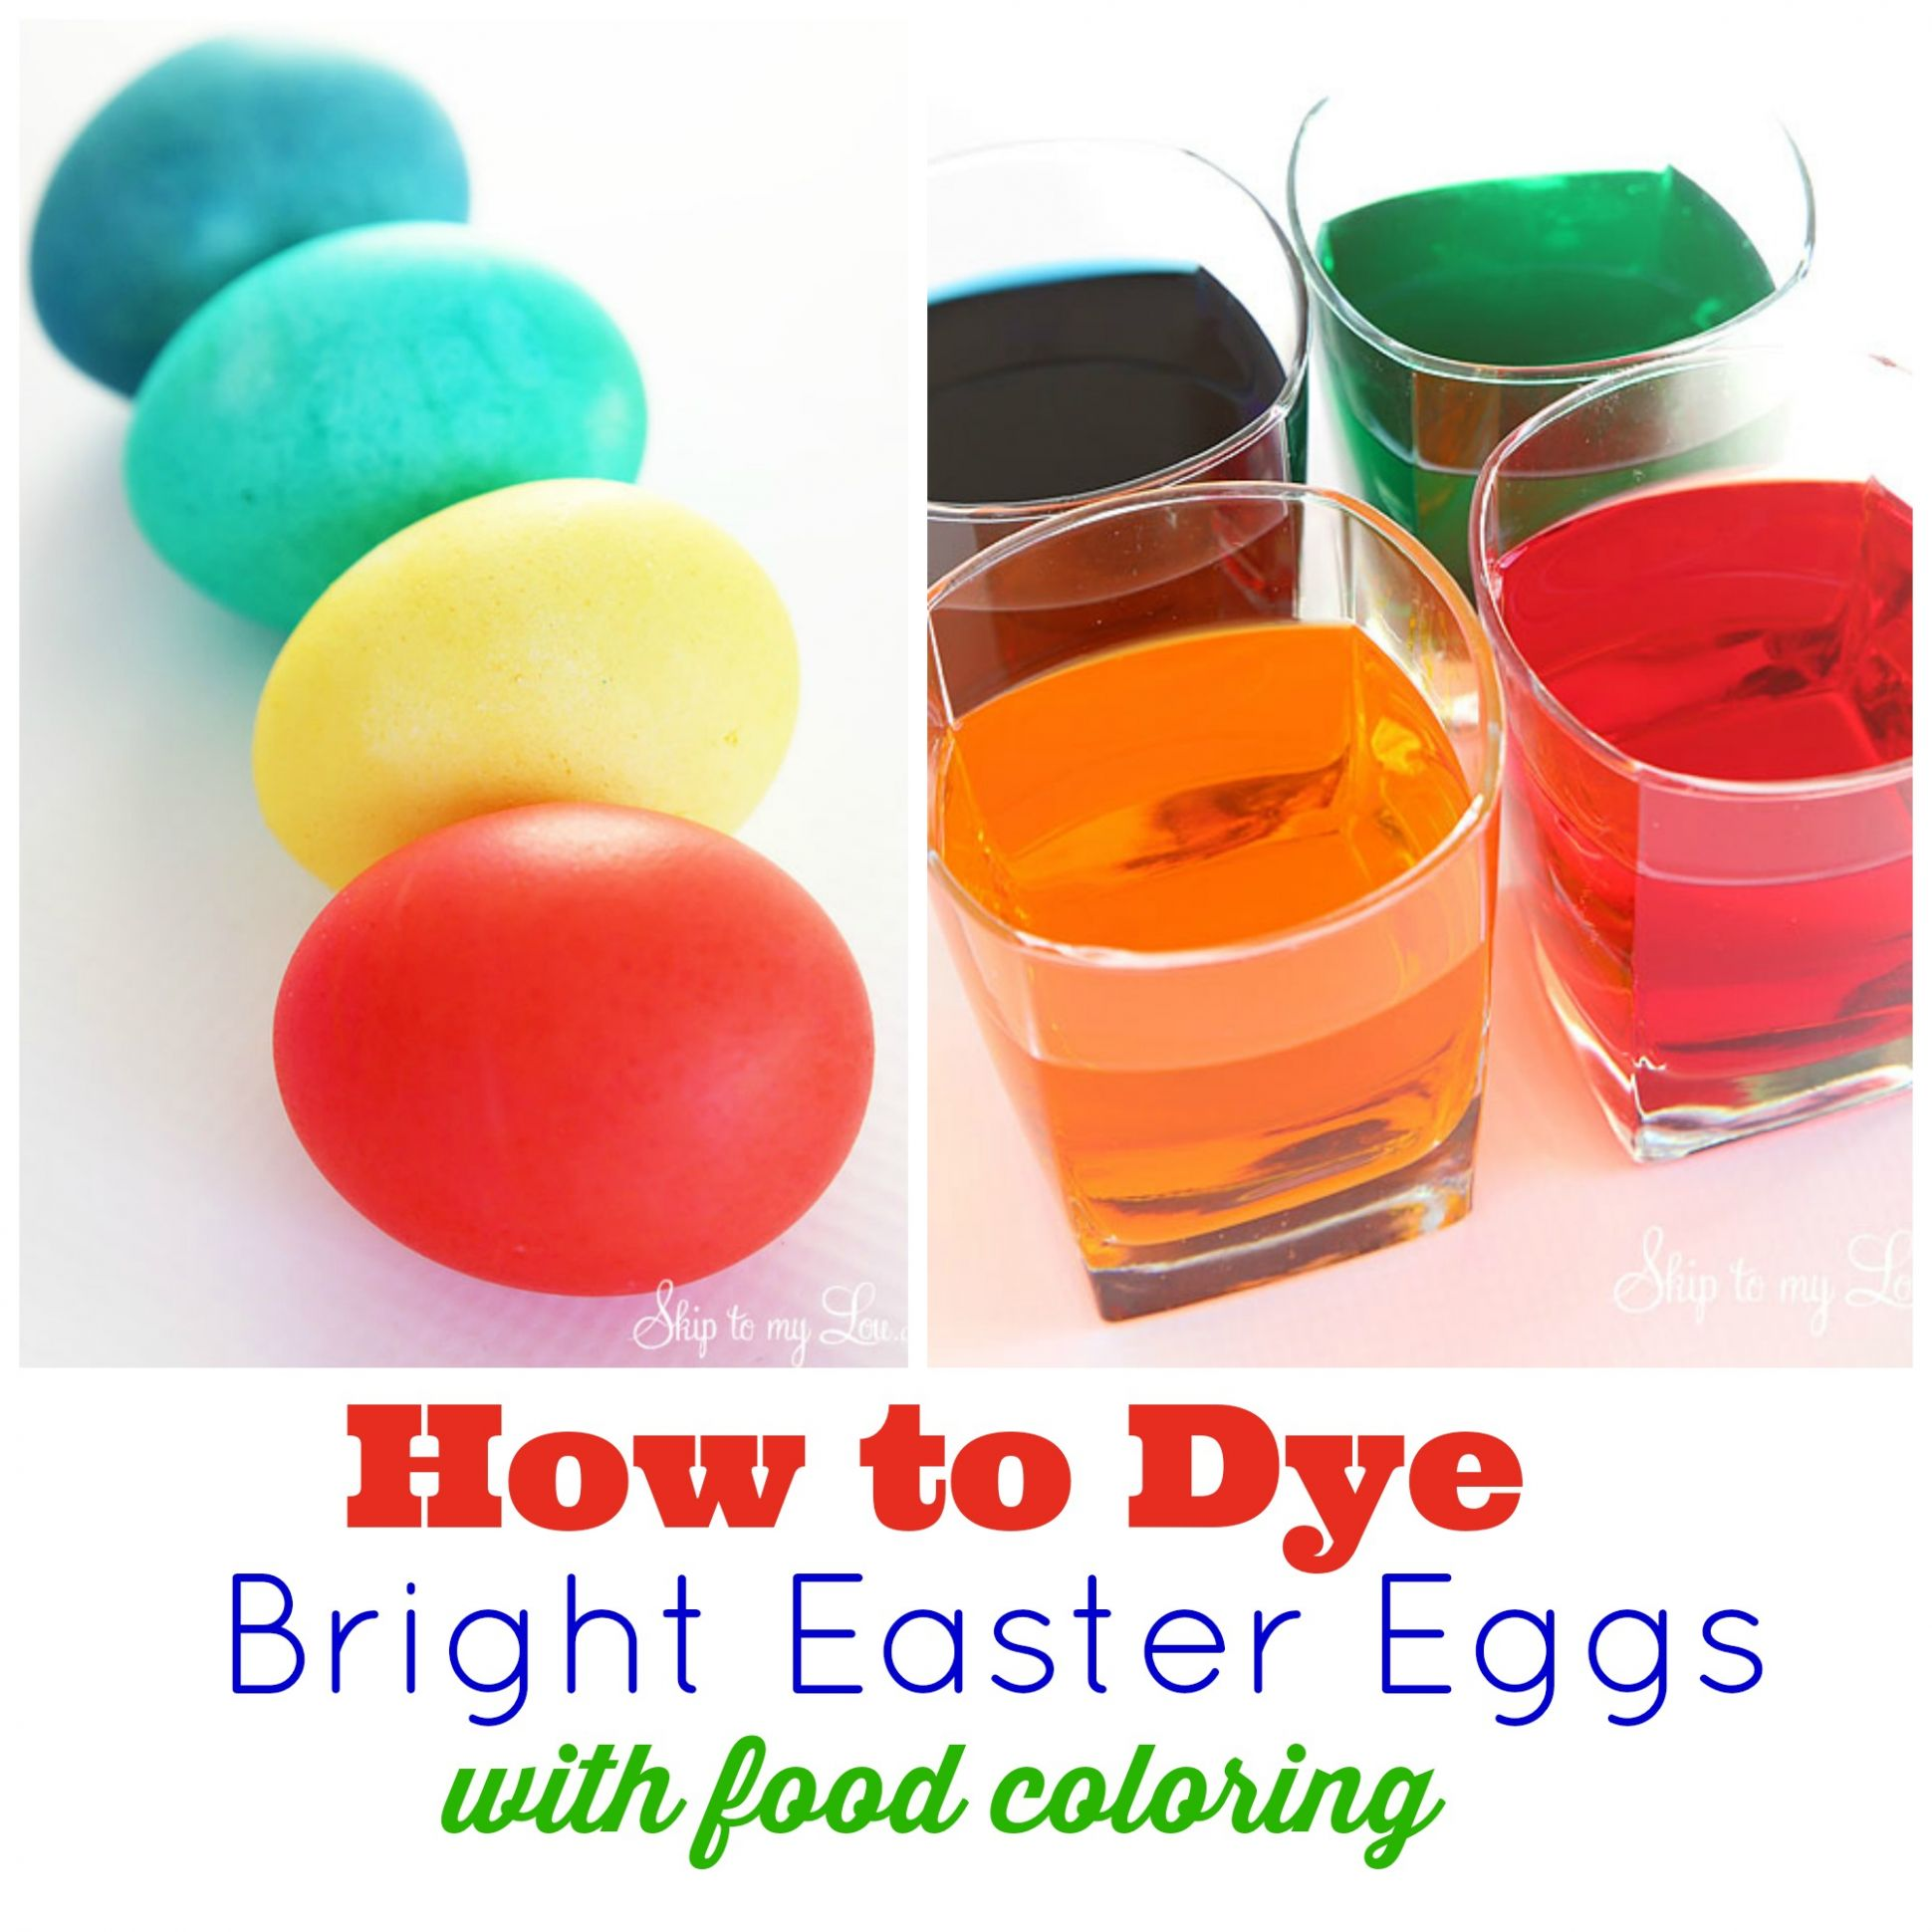 ULTIMATE How to for dying Easter eggs with food coloring | Skip To ..